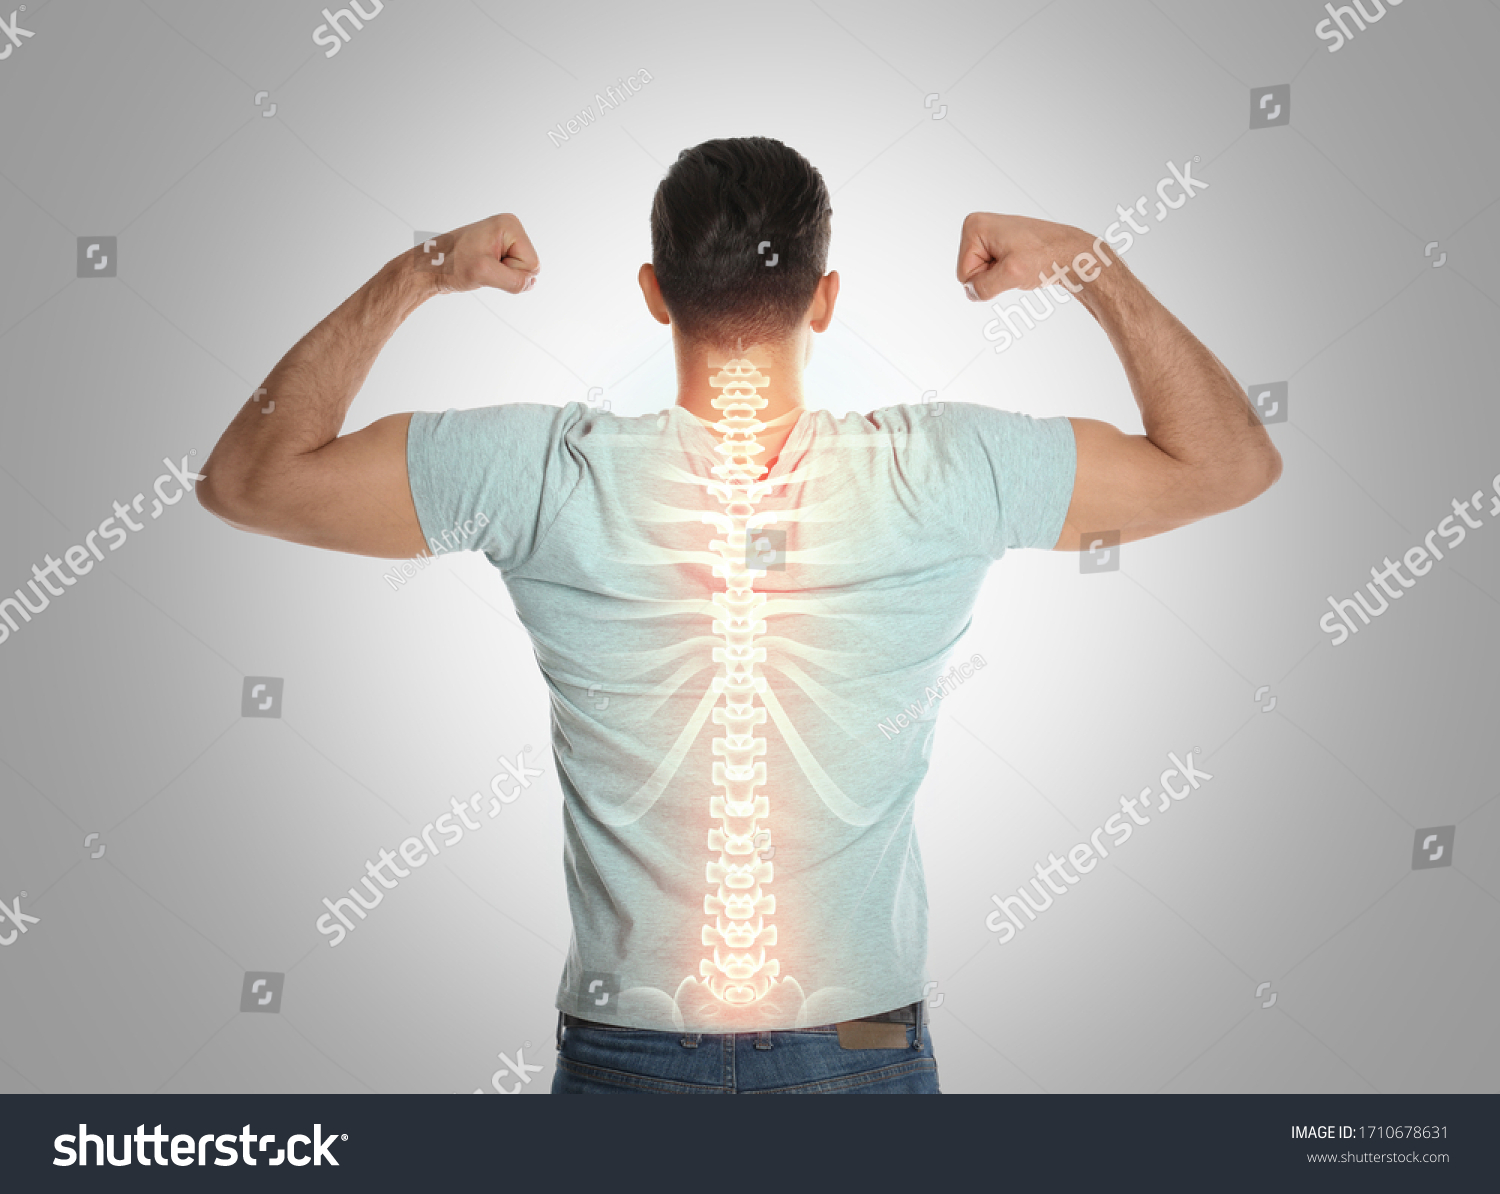 Man with healthy back on light background. Spine pain prevention #1710678631